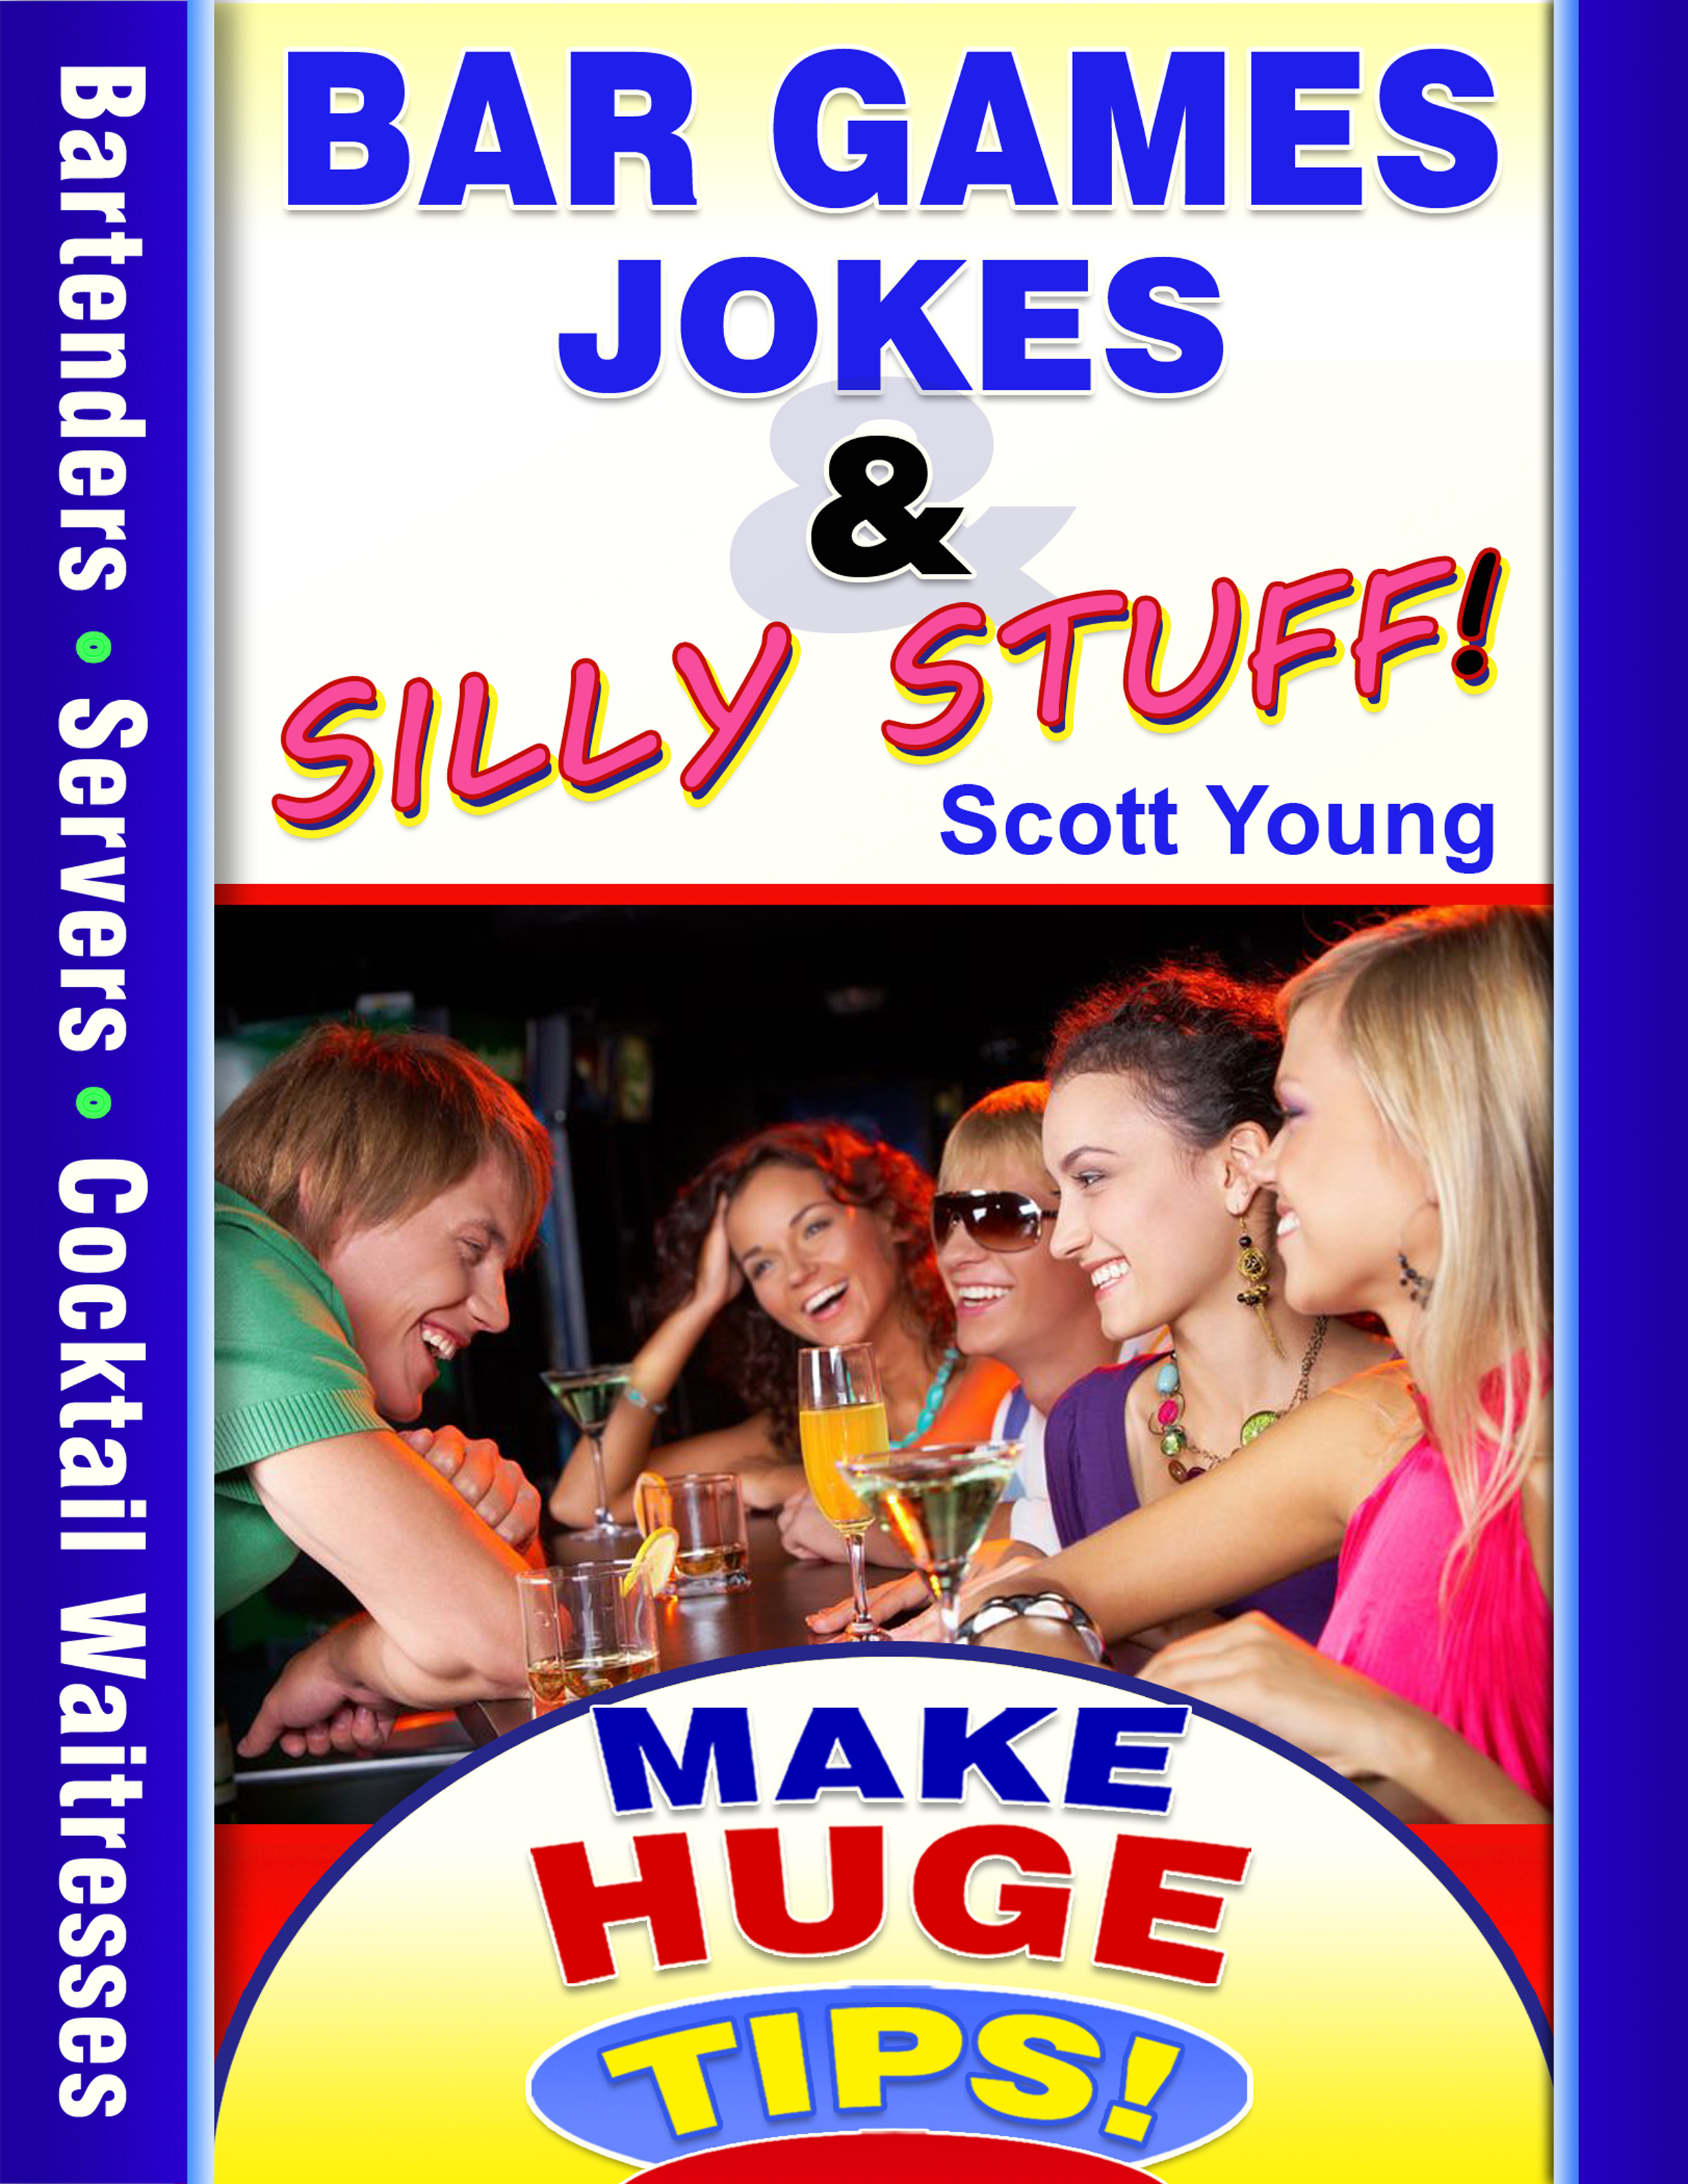 Bar Games, Jokes & Silly Stuff: eBook eBook Author: Scott Young - 112 Pages